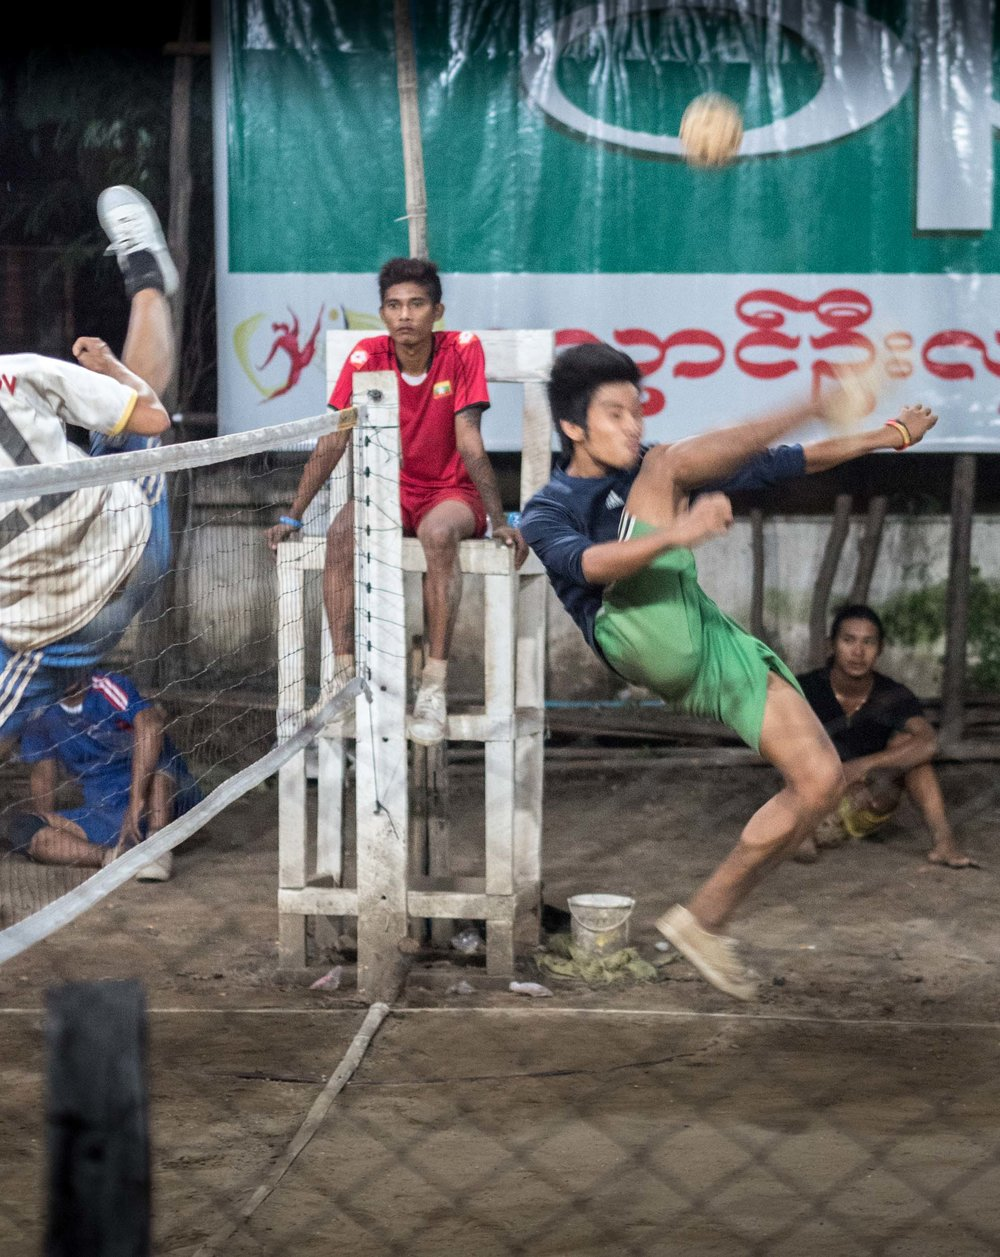 The Bagan night time foot-volley ball league..... Flexible... Impressive!!